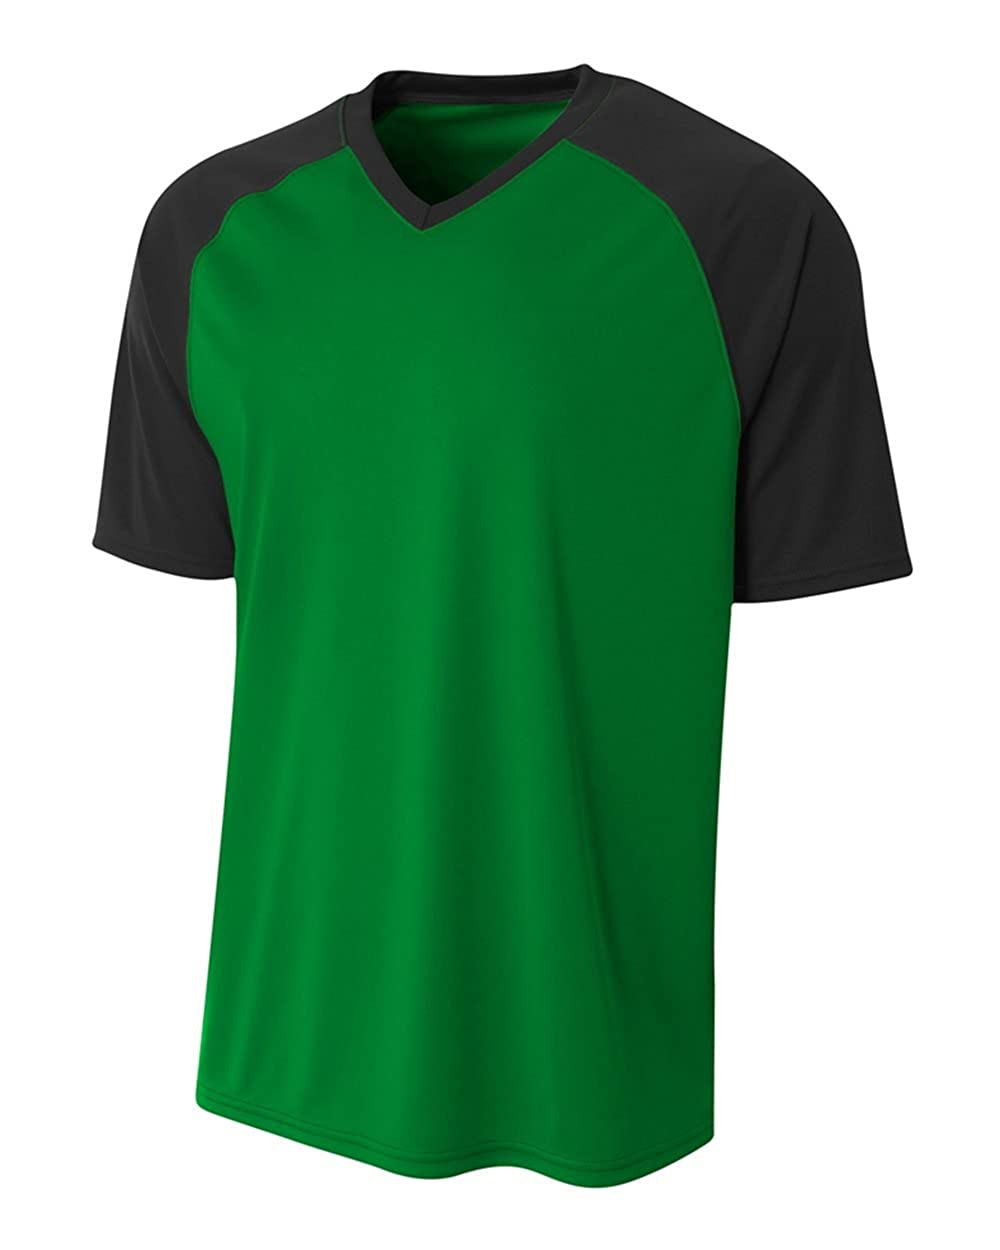 Combo All Season Comfort Sports Jerseys Baseball, Softball, Soccer, Lacrosse, Flag Football/…14 Color Combos Custom or Blank in Youth /& Adult Sizes